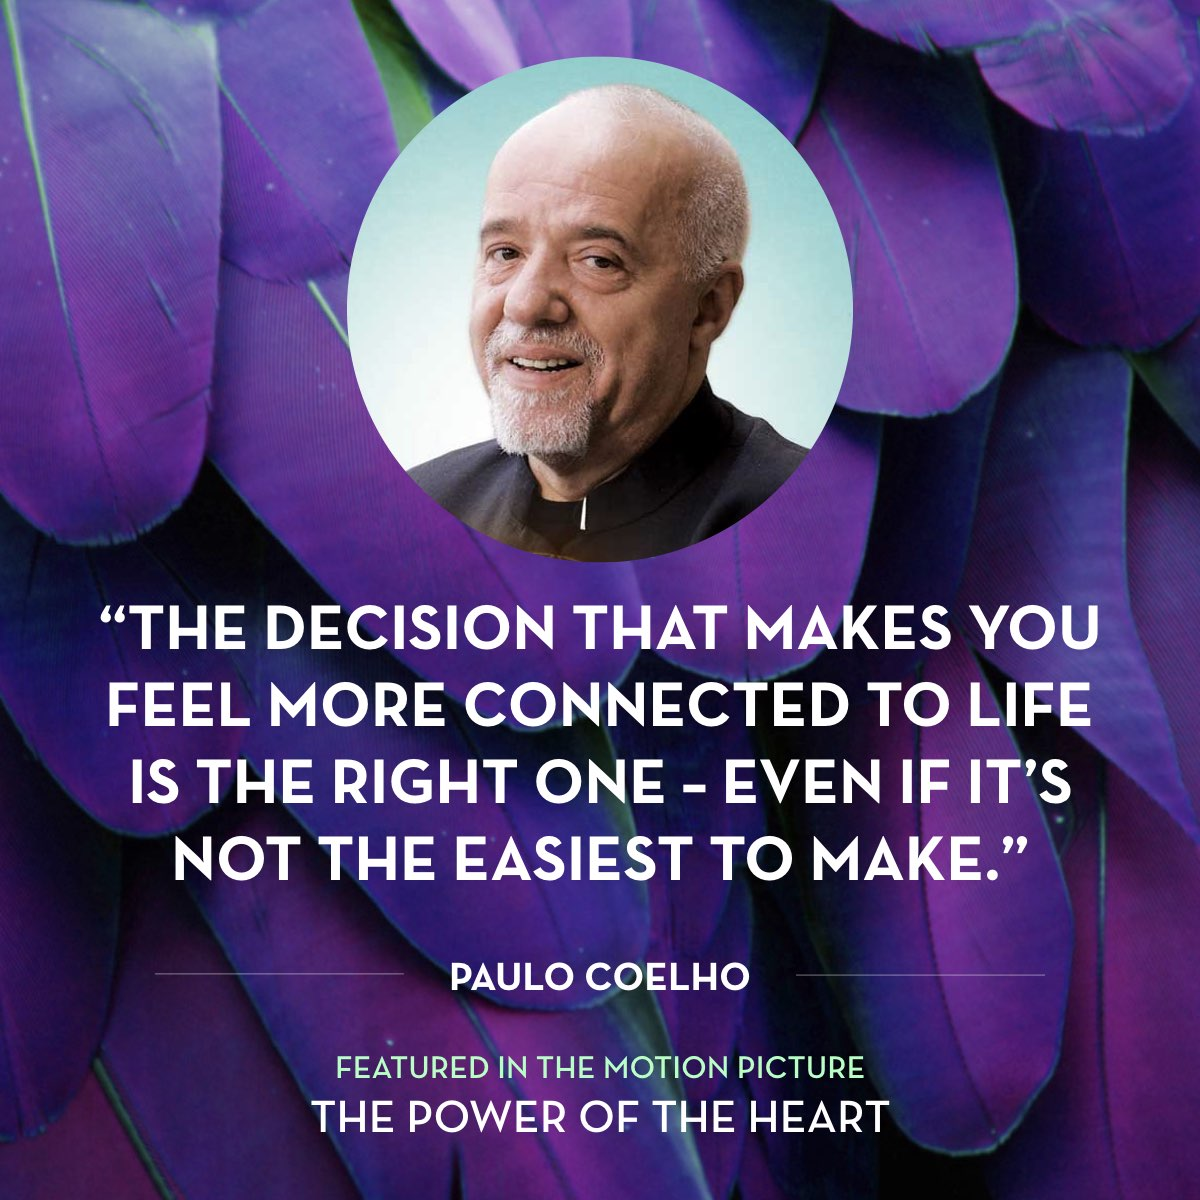 From 'Twelve Steps To Fulfillment' by Paulo Coelho. Read the full story at thepoweroftheheart.com